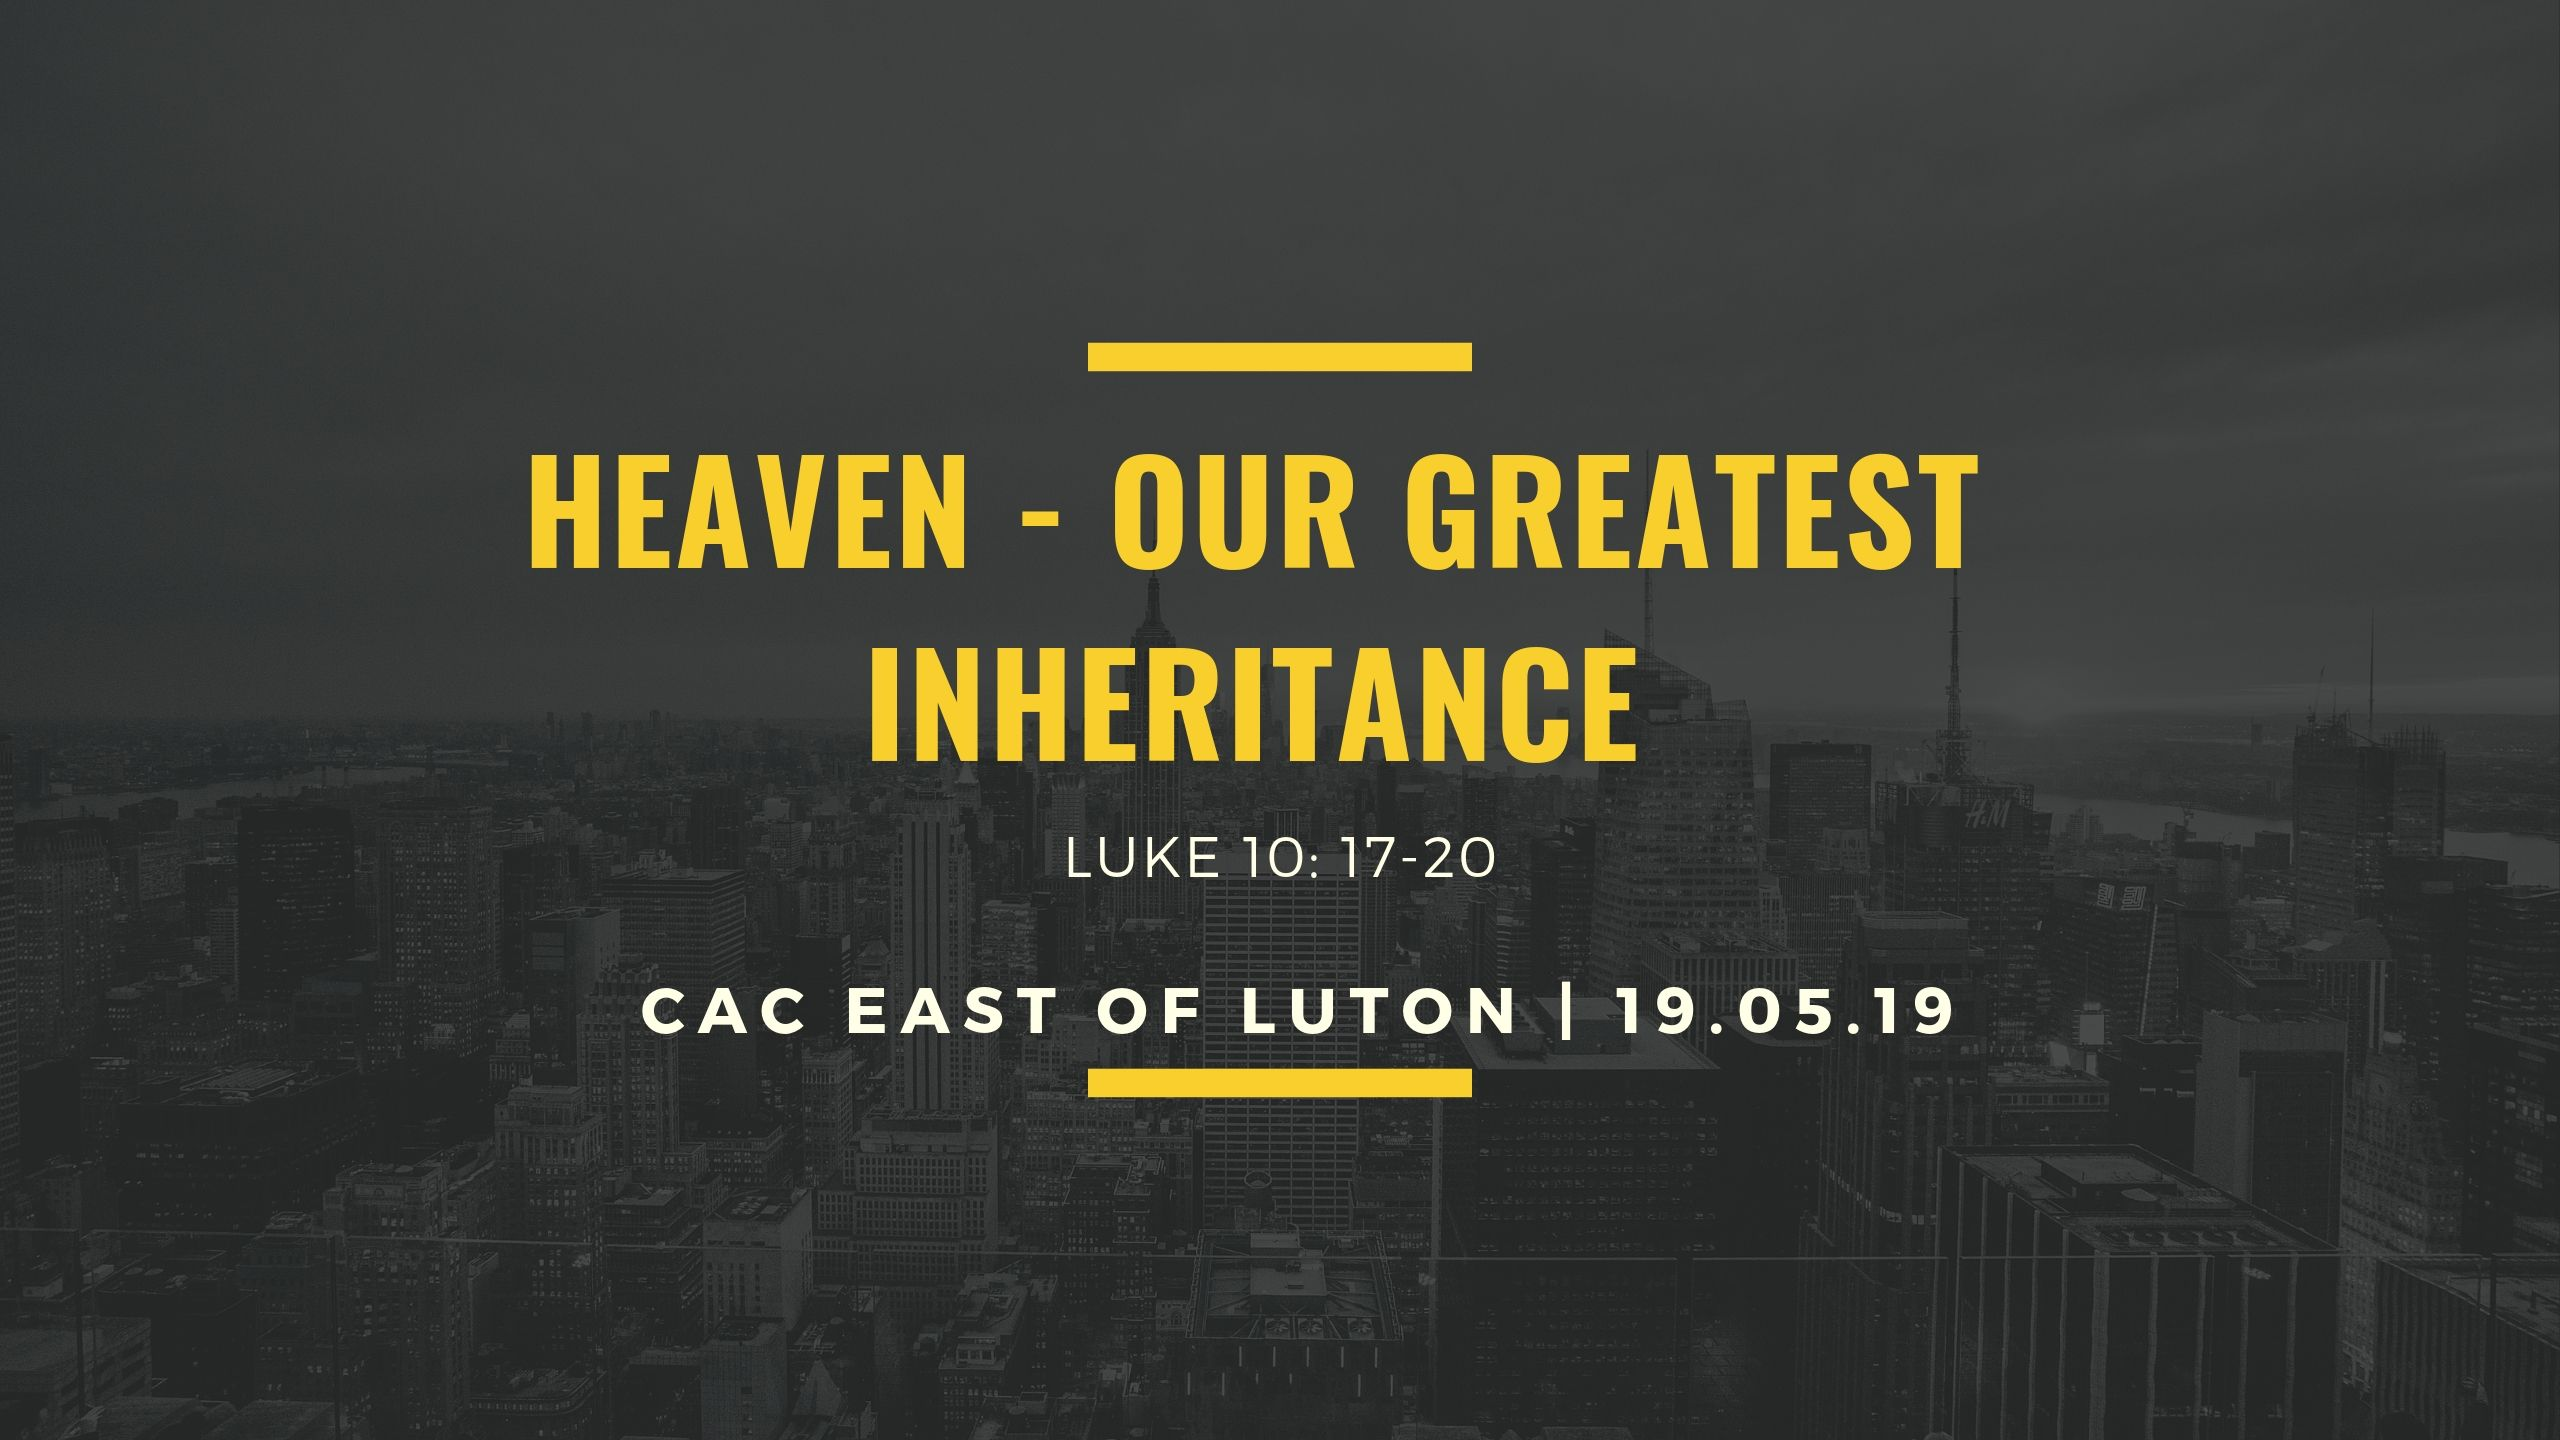 Our Heavenly Inheritance